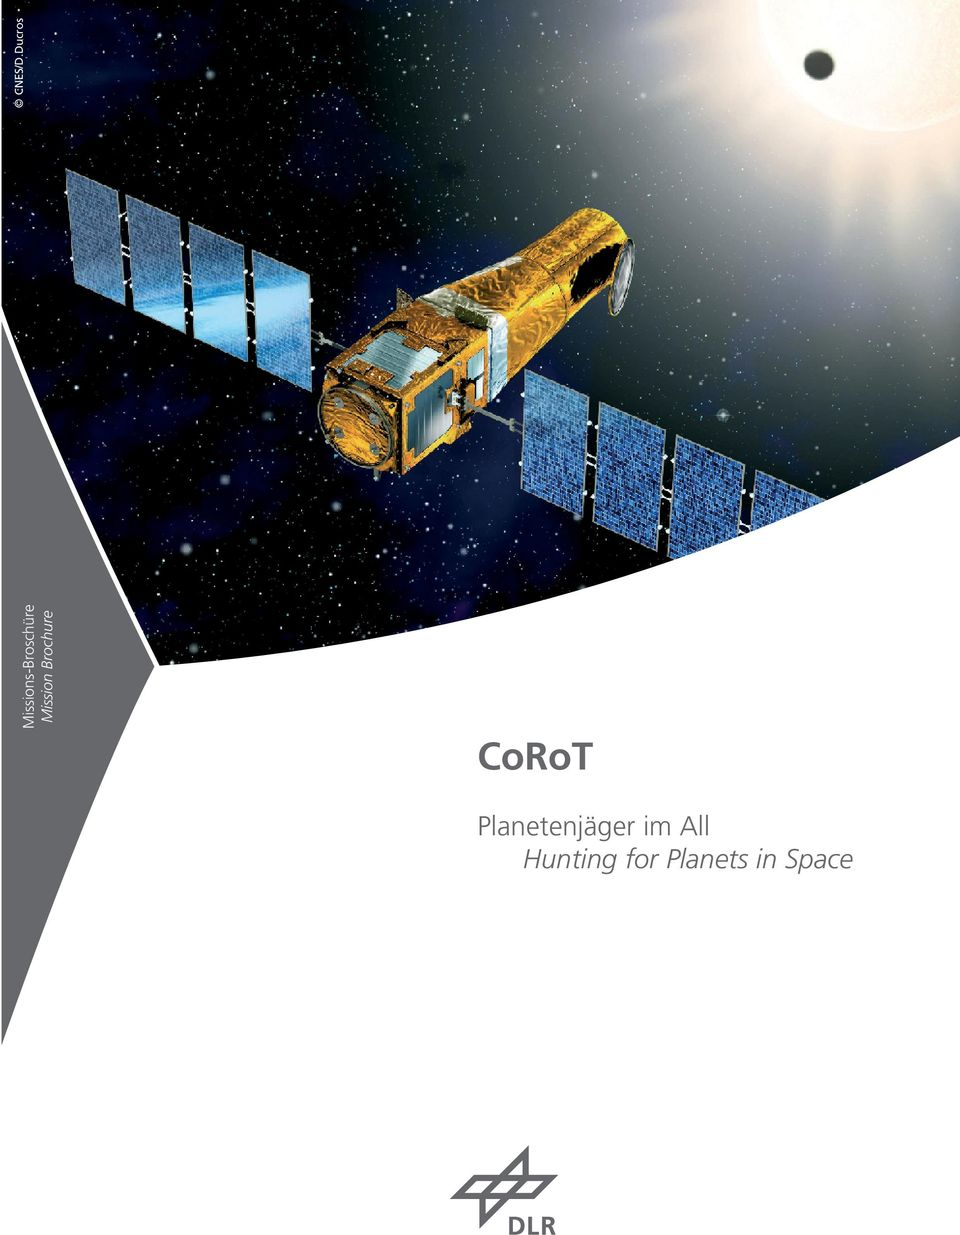 Mission Brochure CoRoT